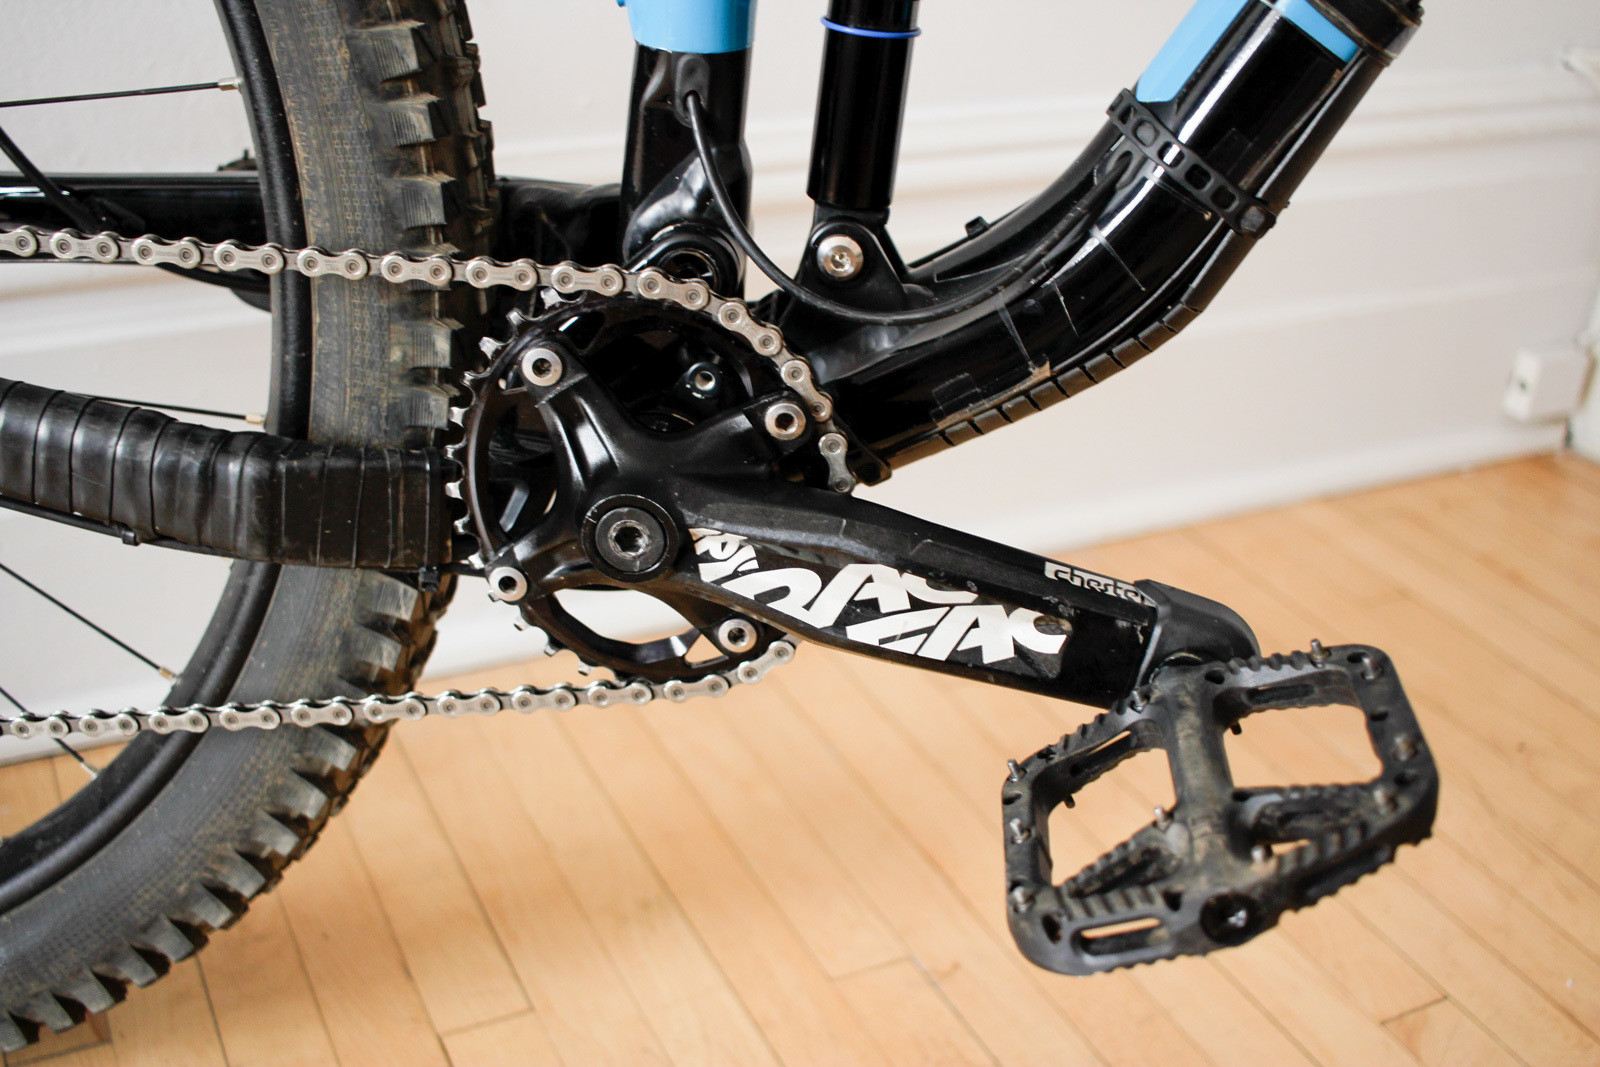 Durable and well-made oval chainring